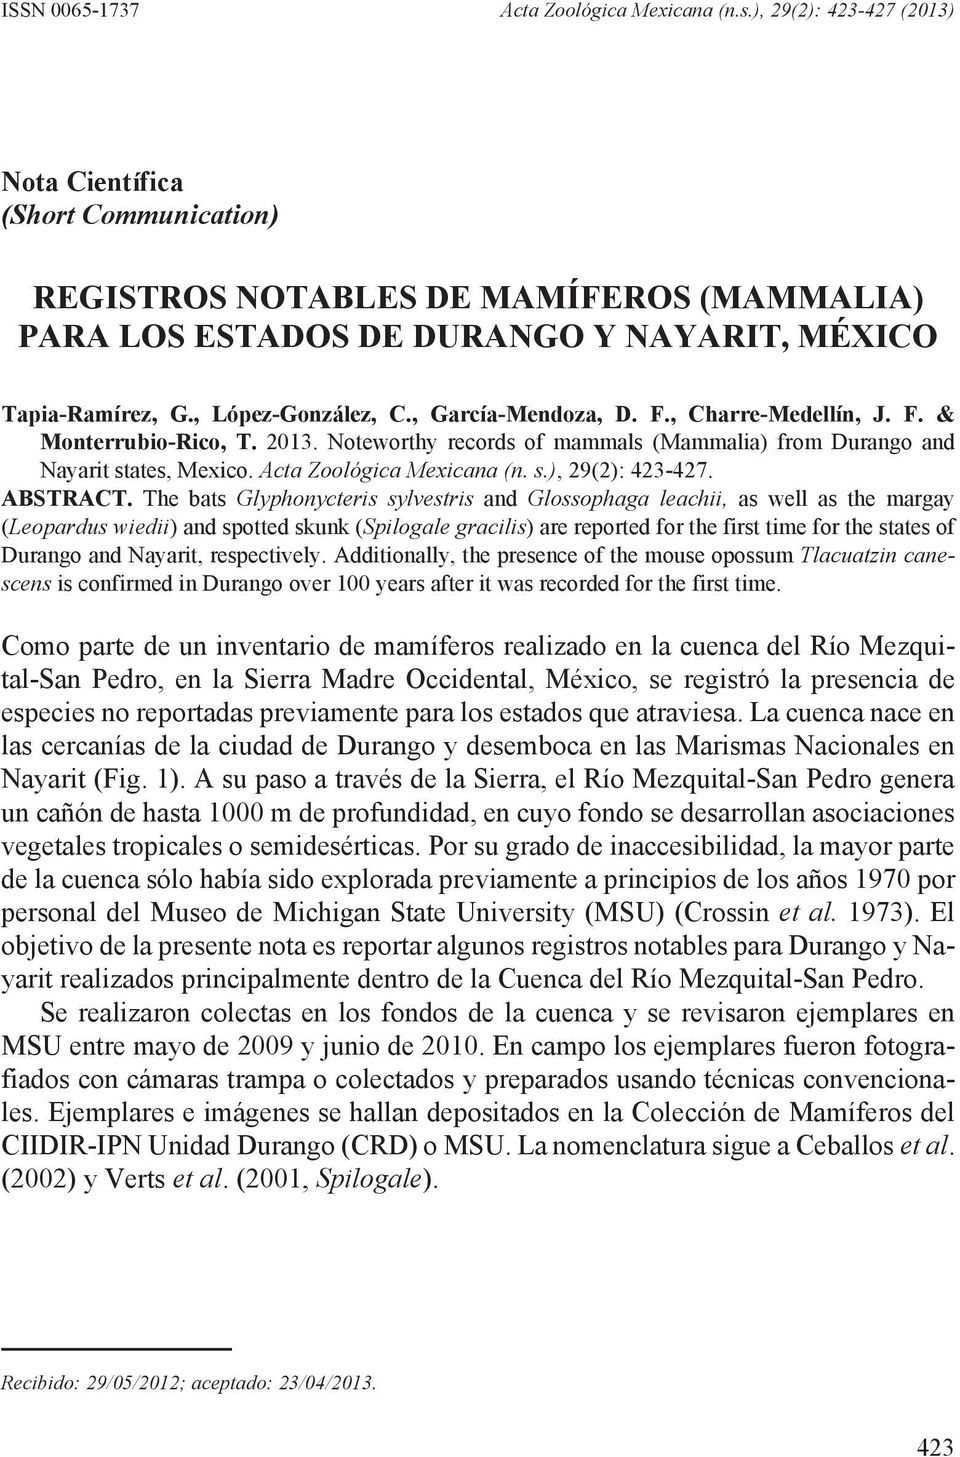 , López-González, C., García-Mendoza, D. F., Charre-Medellín, J. F. & Monterrubio-Rico, T. 2013. Noteworthy records of mammals (Mammalia) from Durango and Nayarit states, Mexico.